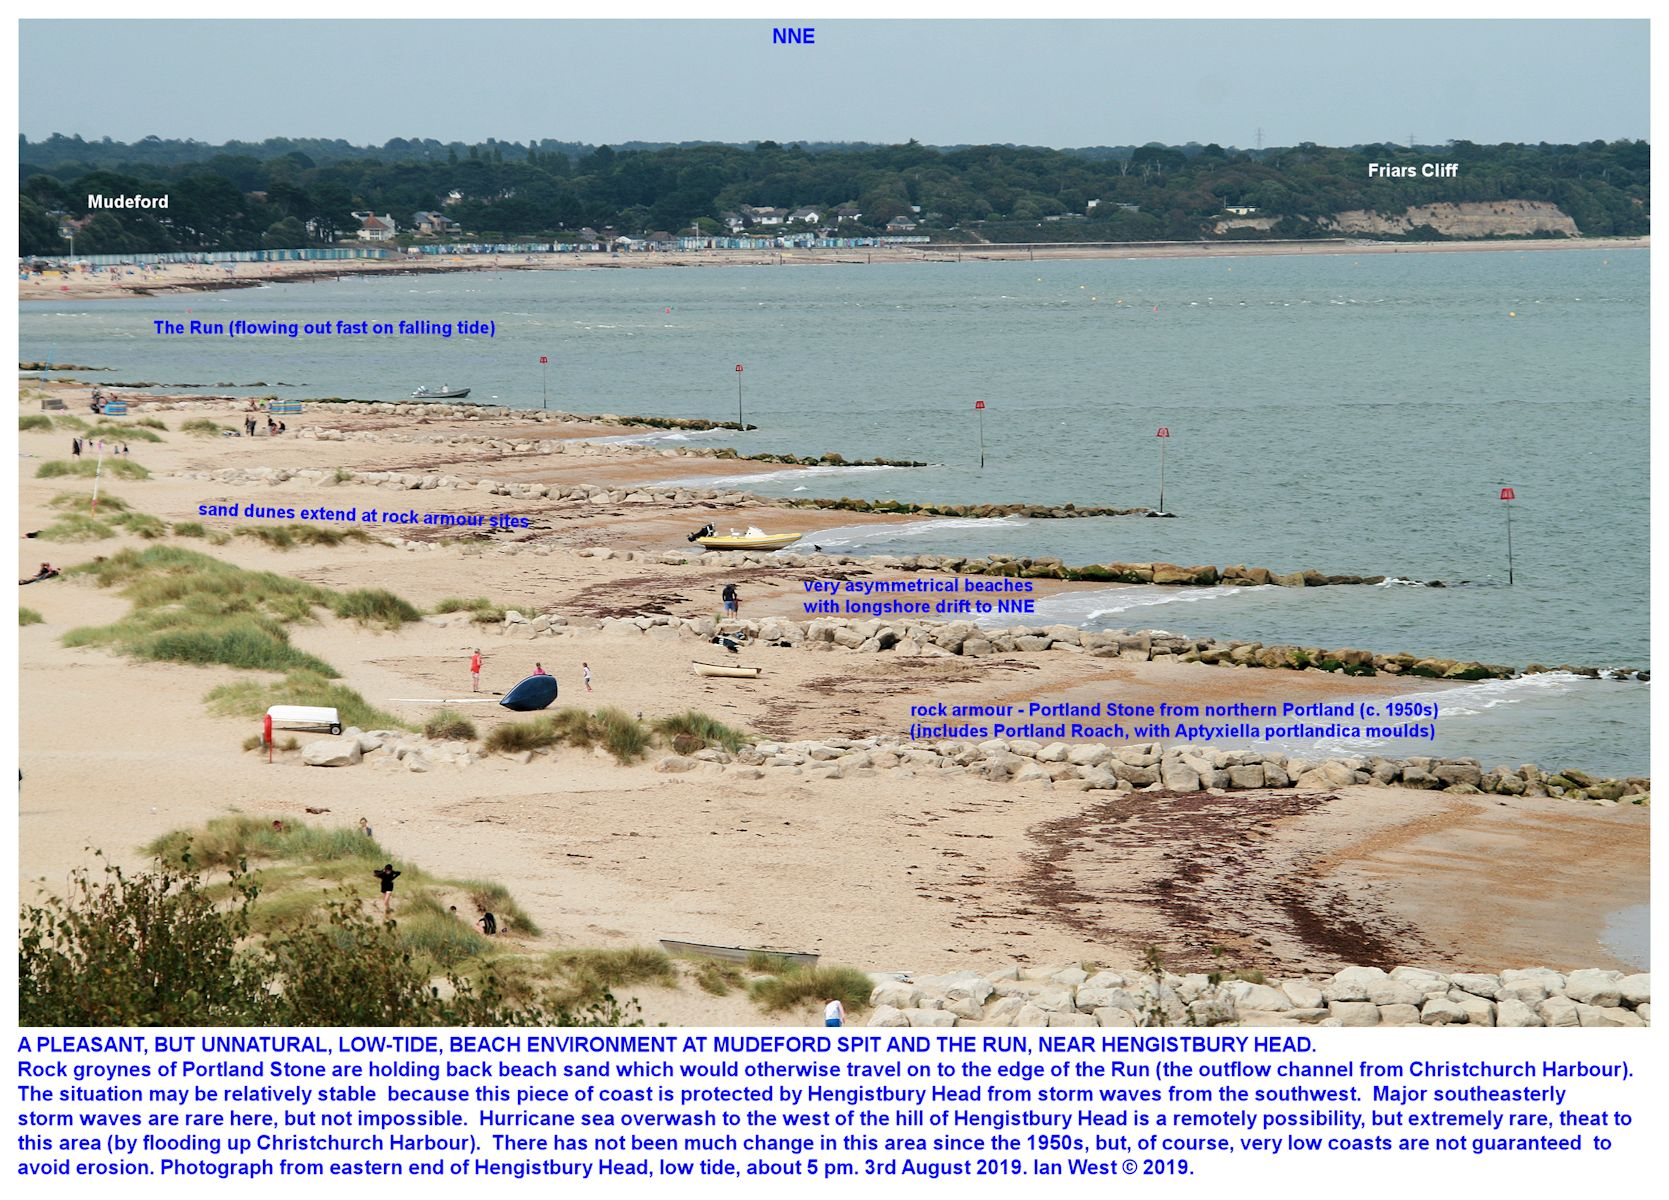 Another view of the northern part of Mudeford Spit, with beach sand held by Portland Stone groynes, photograph - low tide, pm, 3rd August 2019